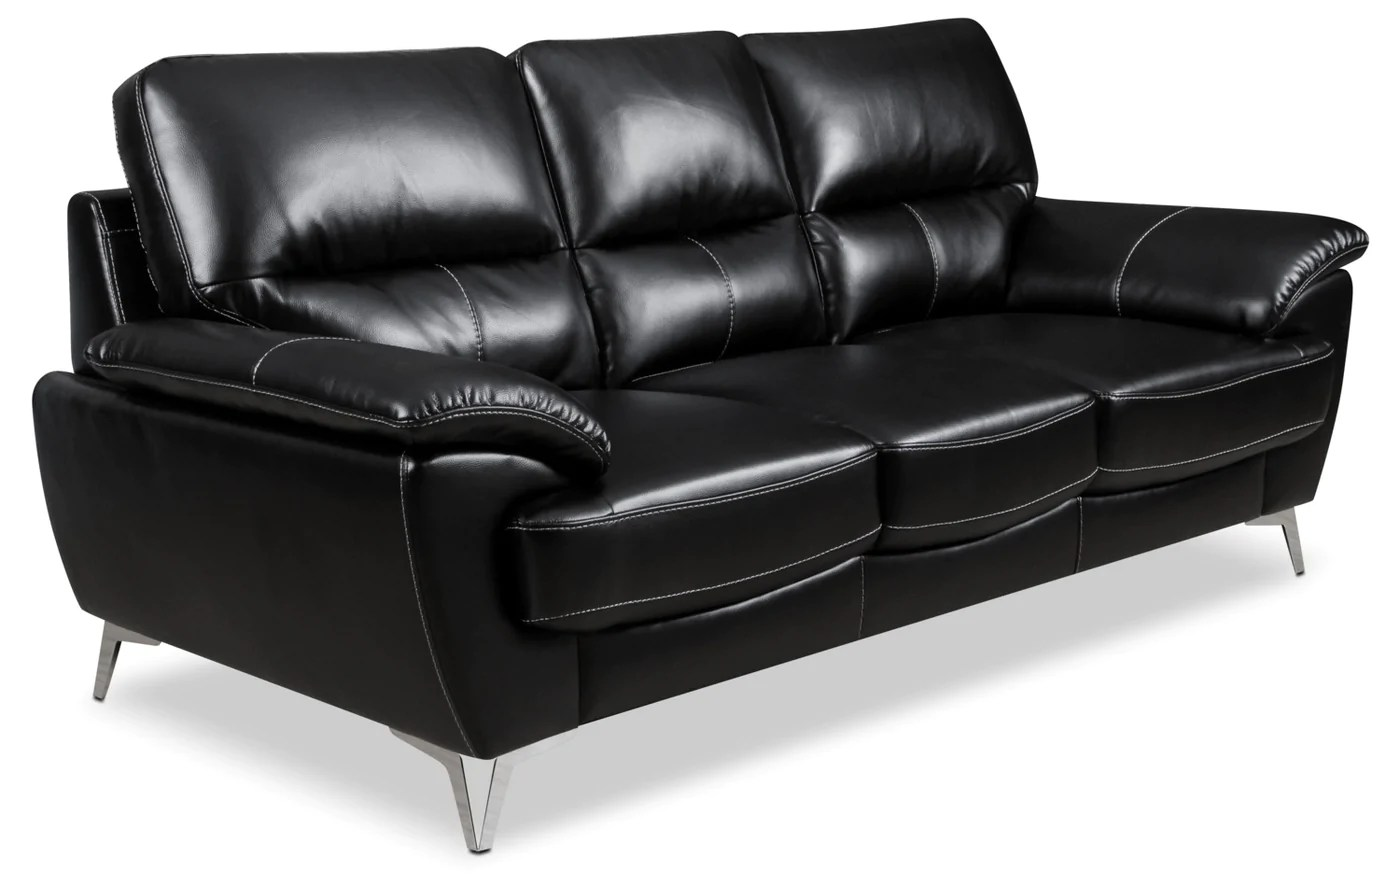 Sofa Couch The Brick Olivia Leather-look Fabric Sofa – Black | The Brick